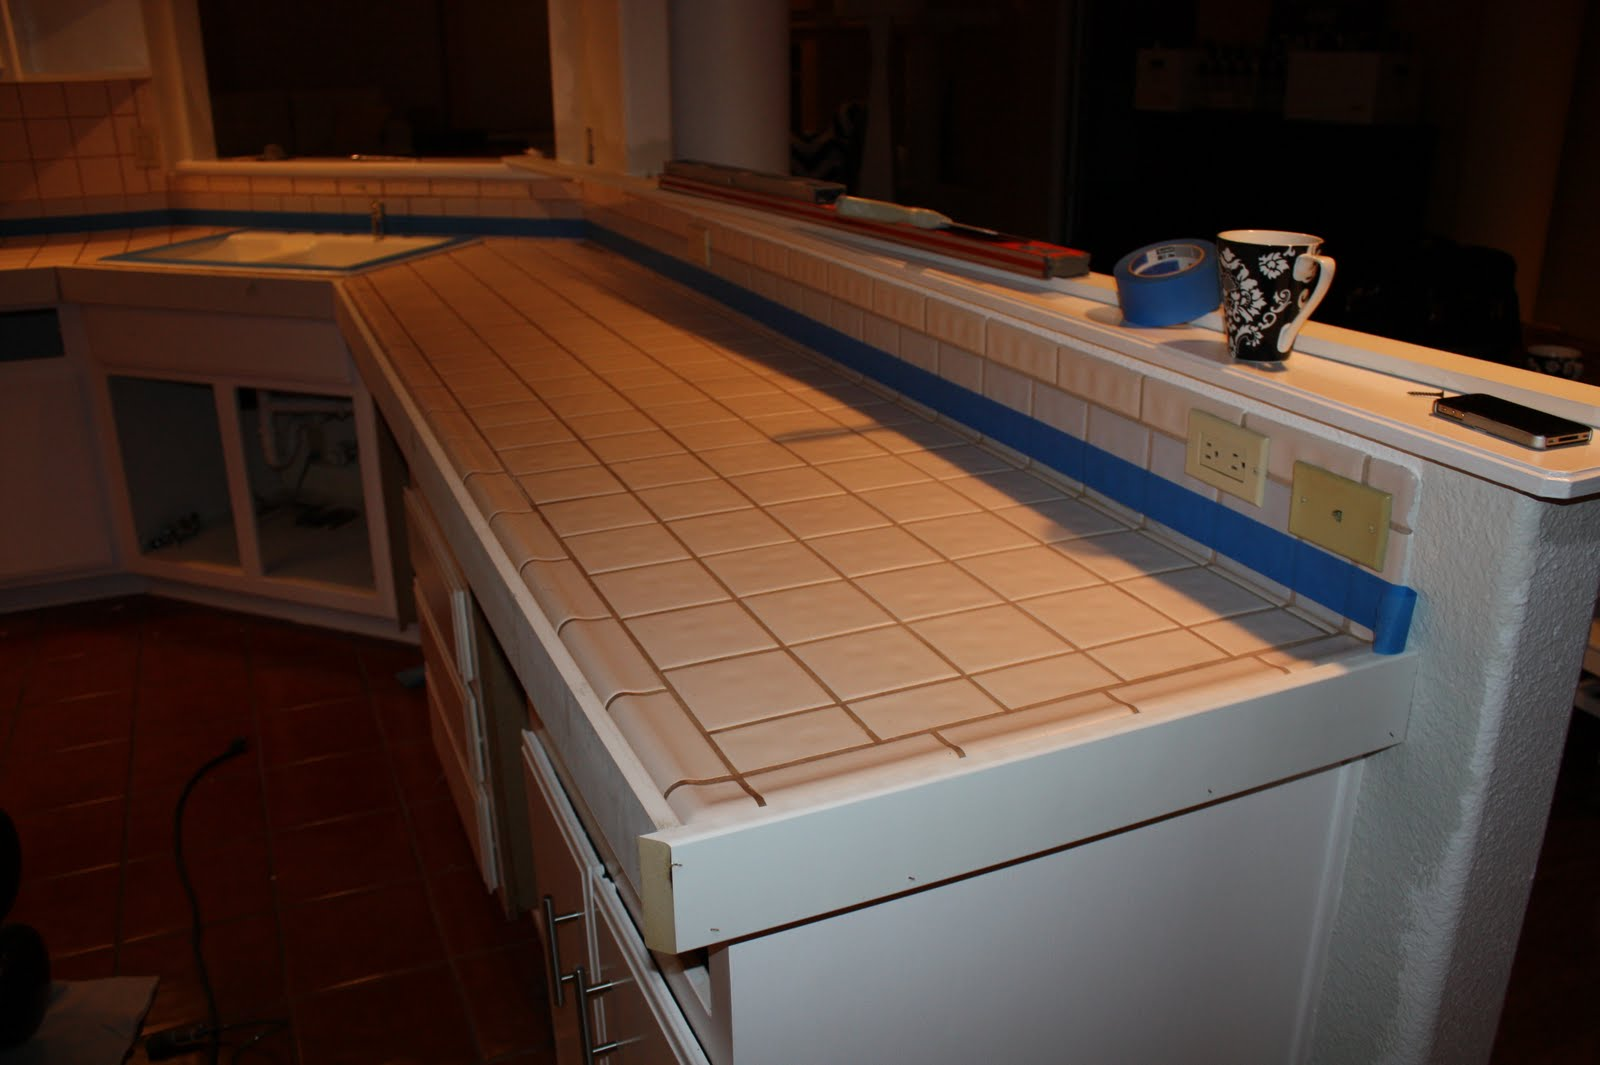 Tile Kitchen Countertops Remodelaholic Quick Install Of Concrete Countertops Kitchen